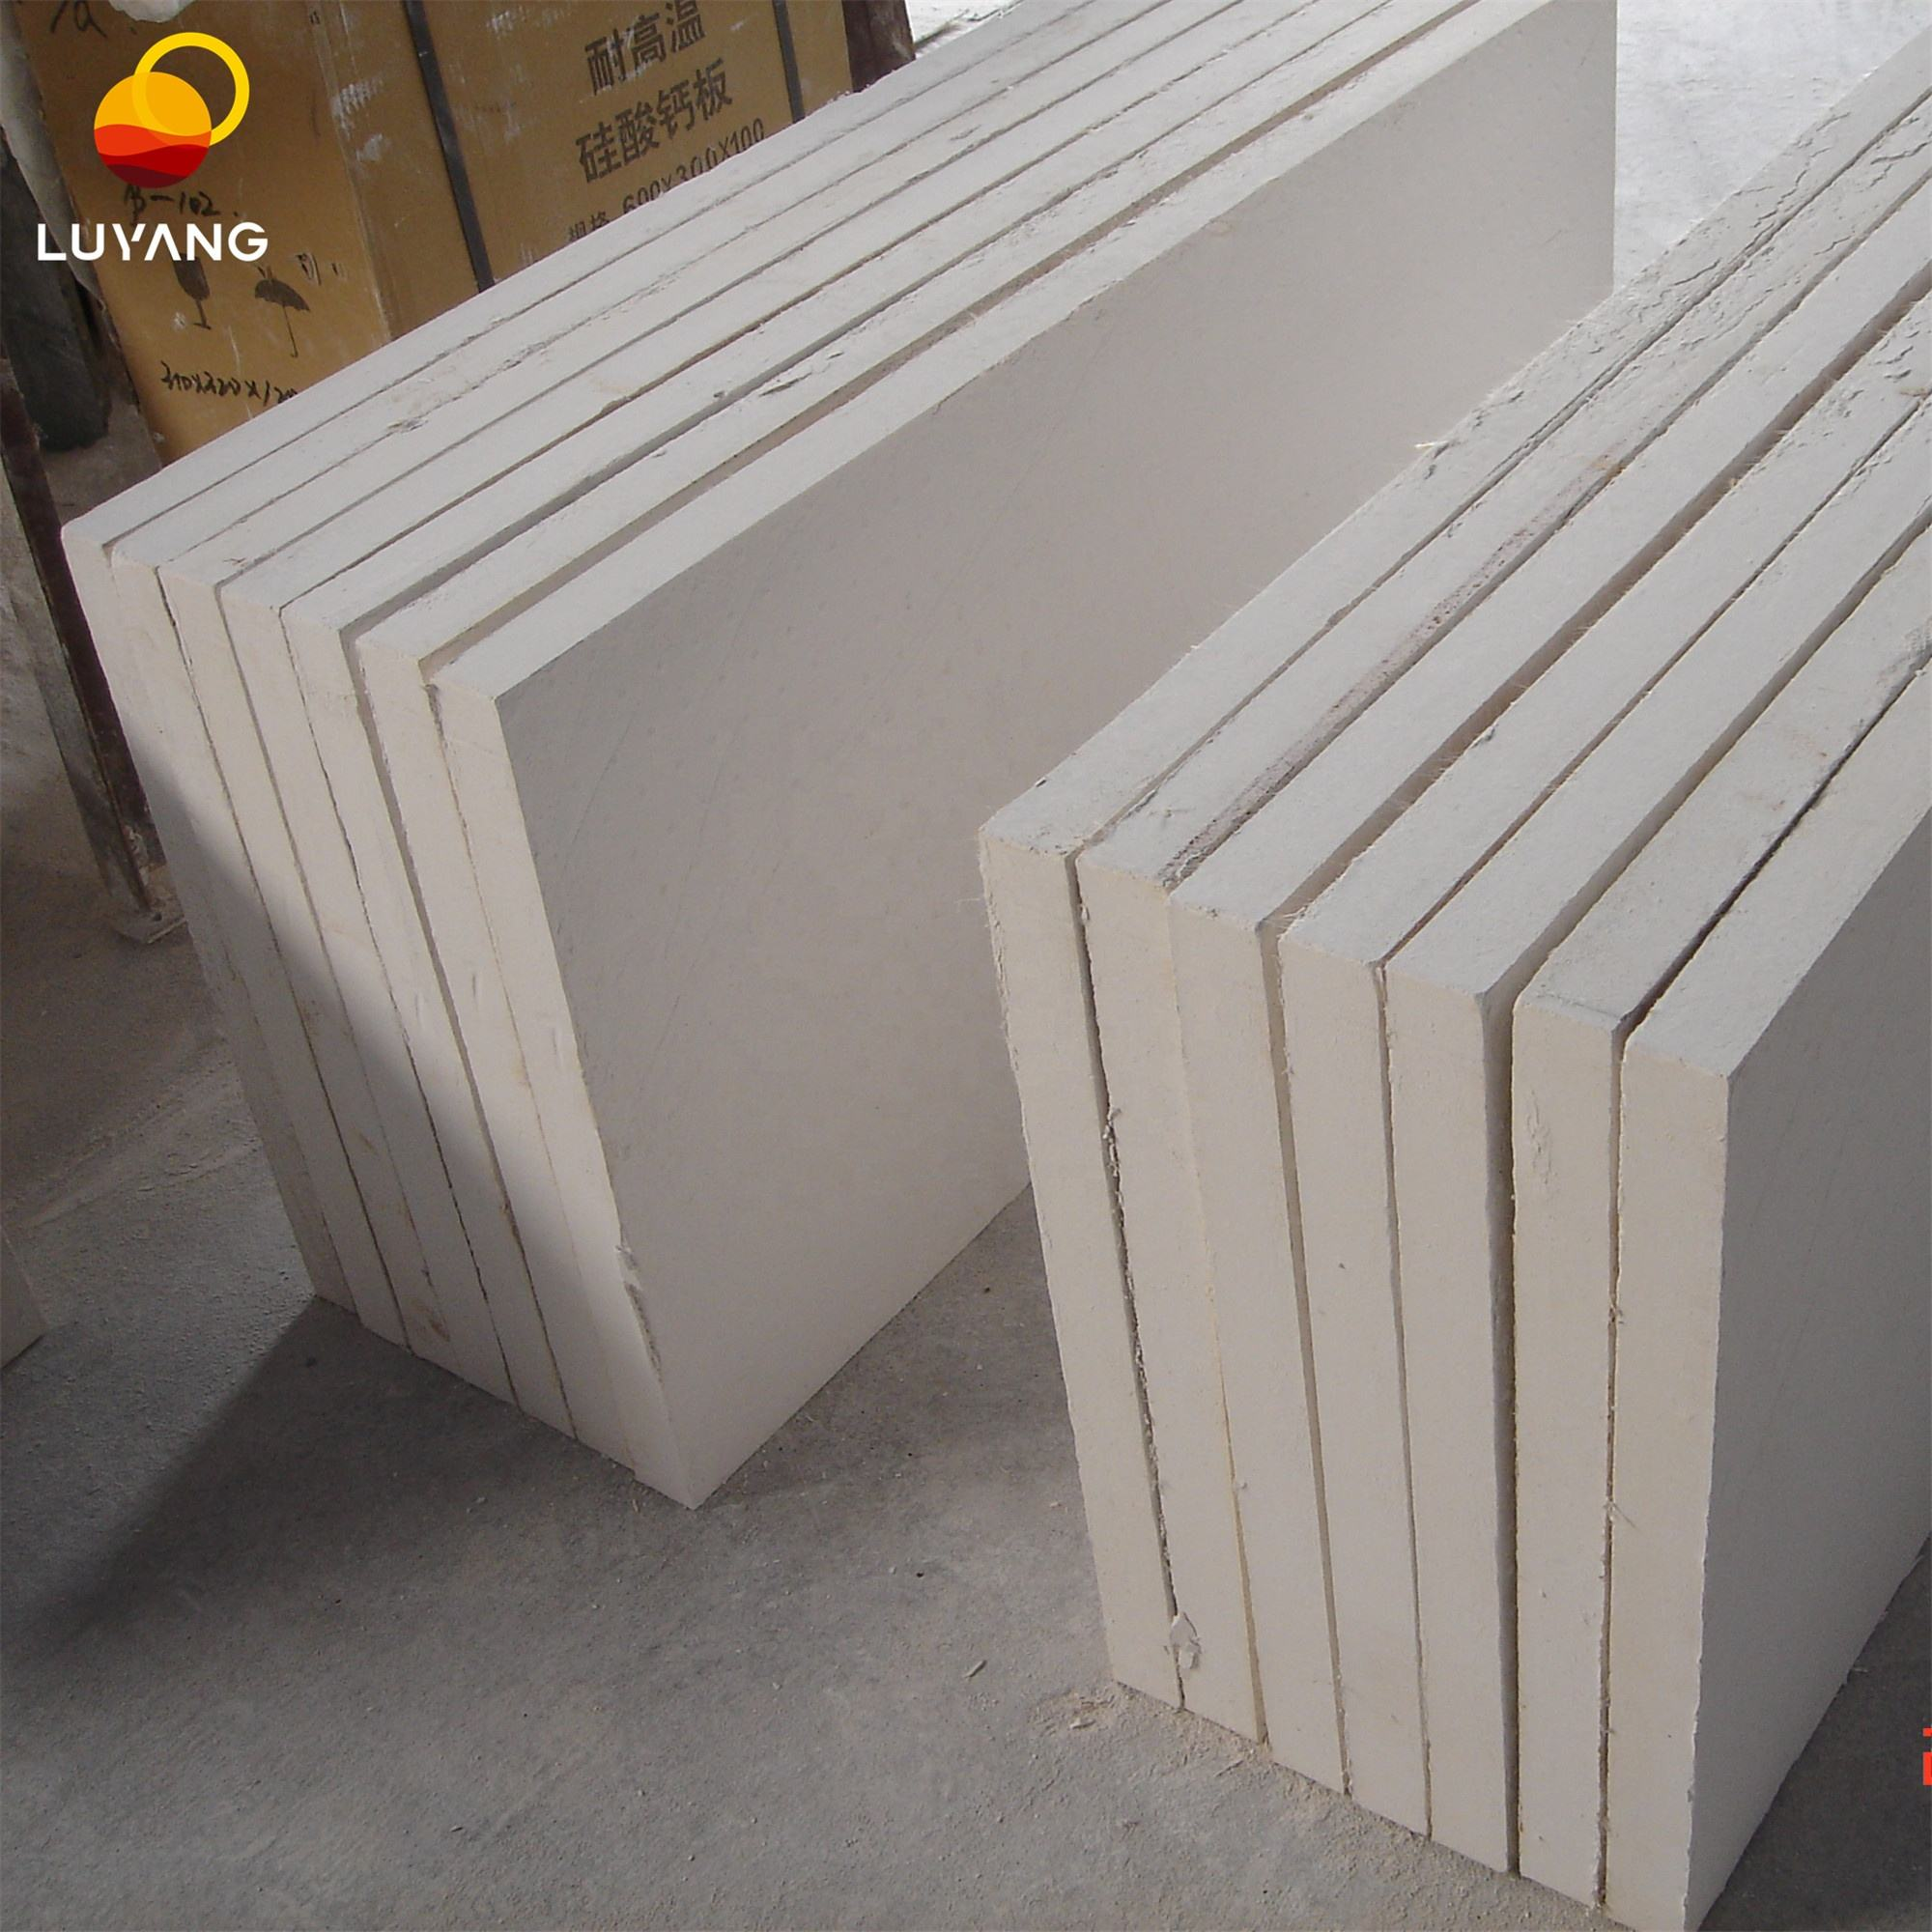 Calcium Silicate Board LUYANG Fire Resistant High Strength 650 Degree Insulation Calcium Silicate Board